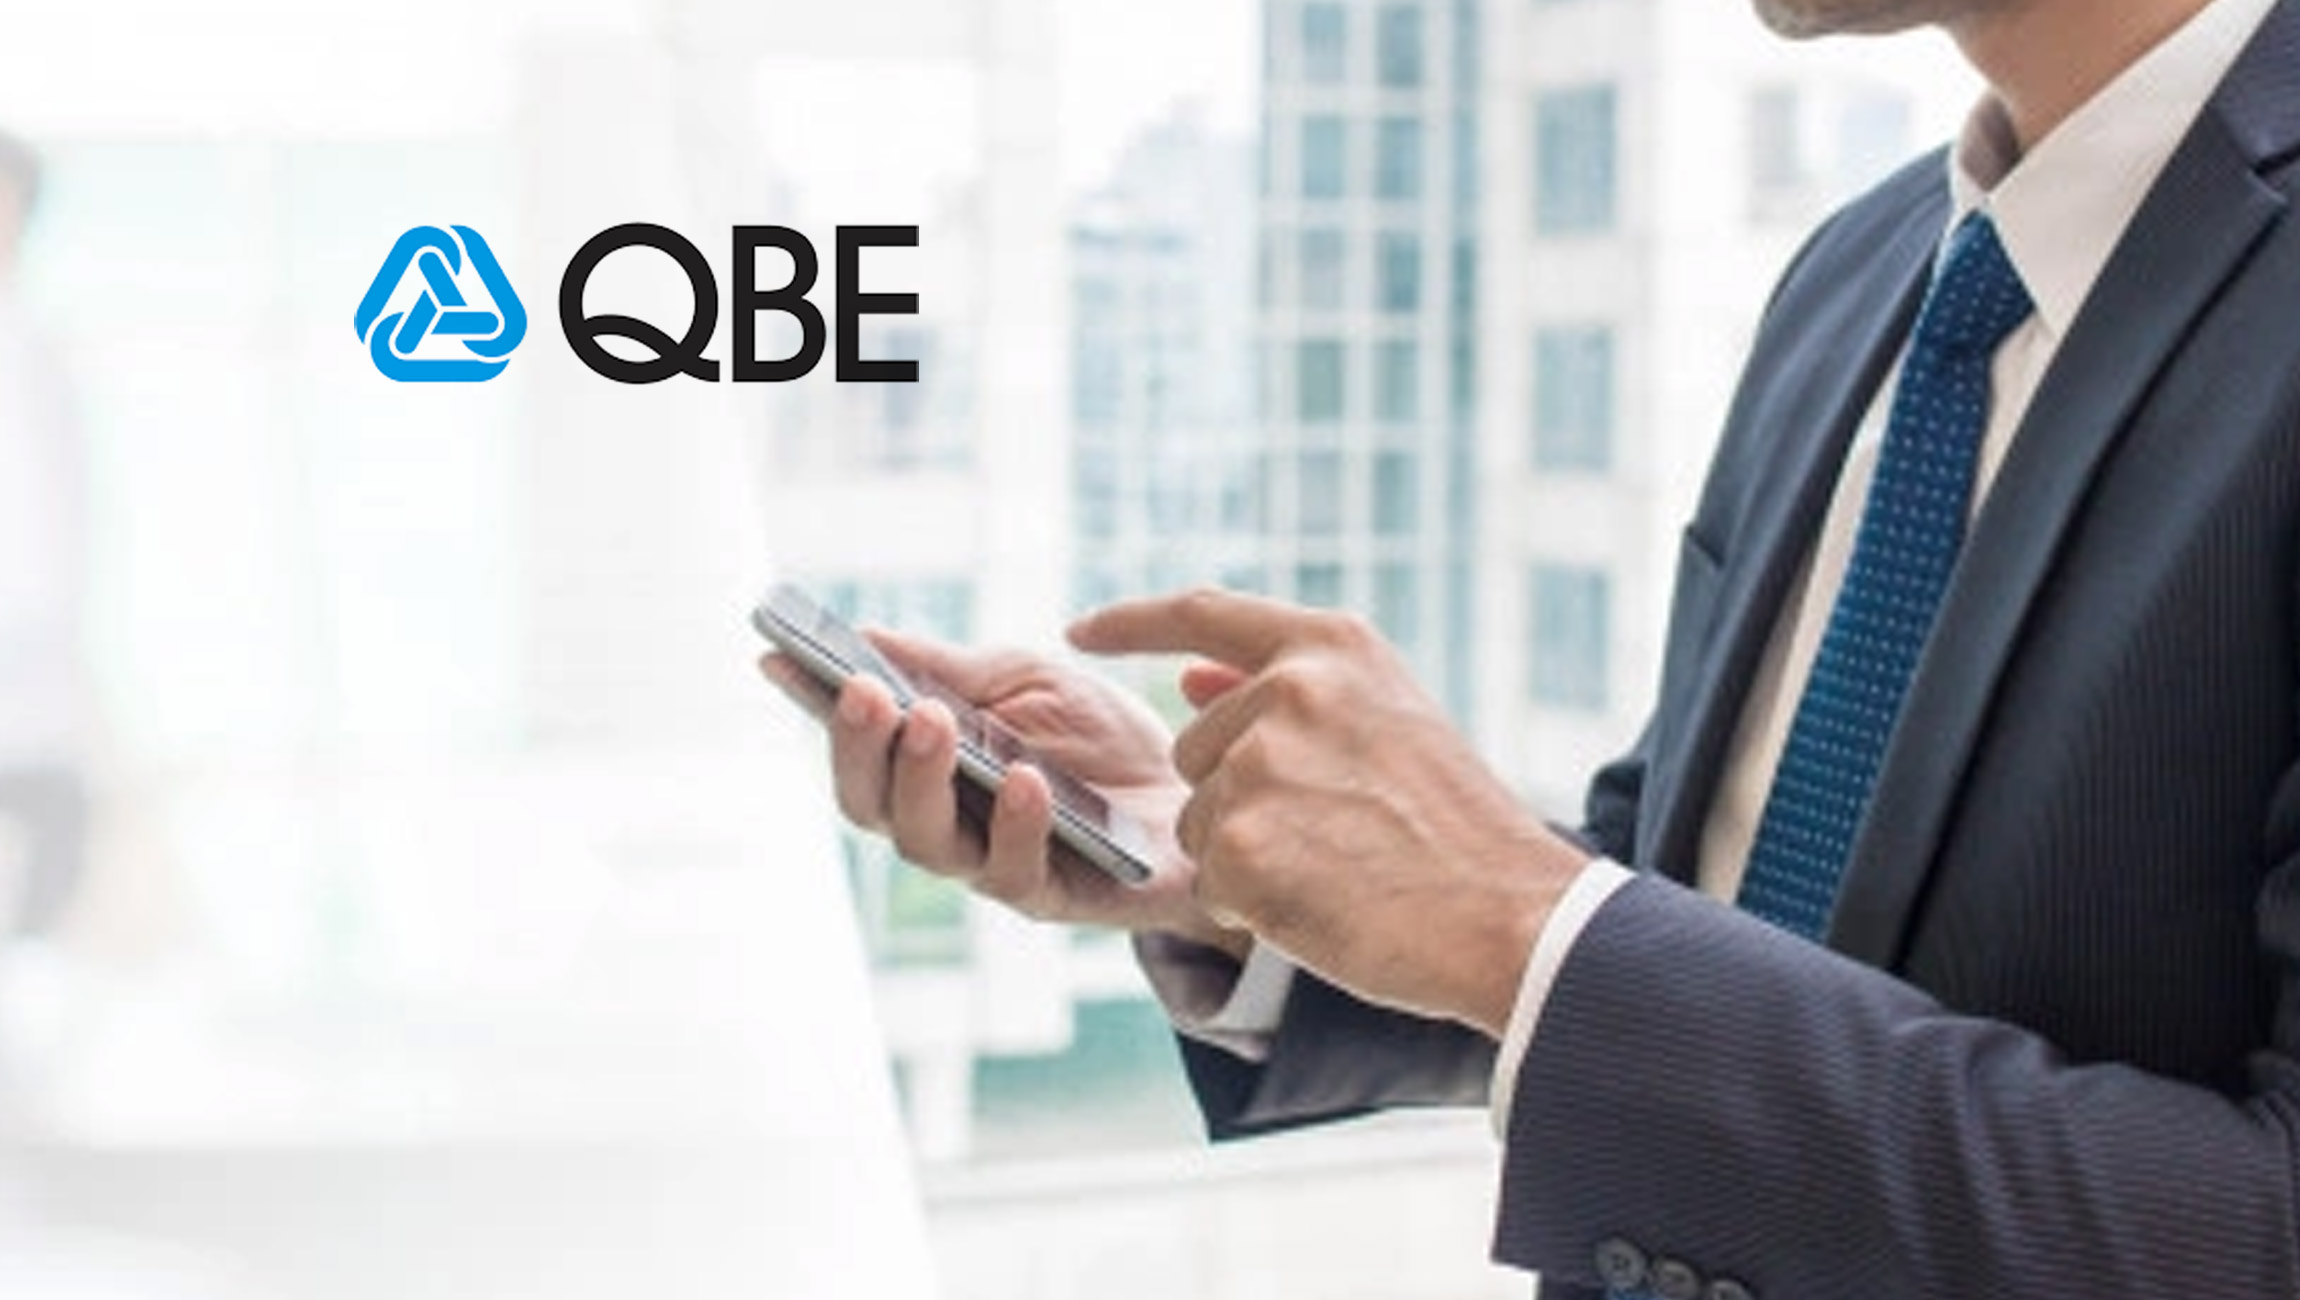 QBE Assessment Tool to Help Customers Evaluate Sustainability Risks